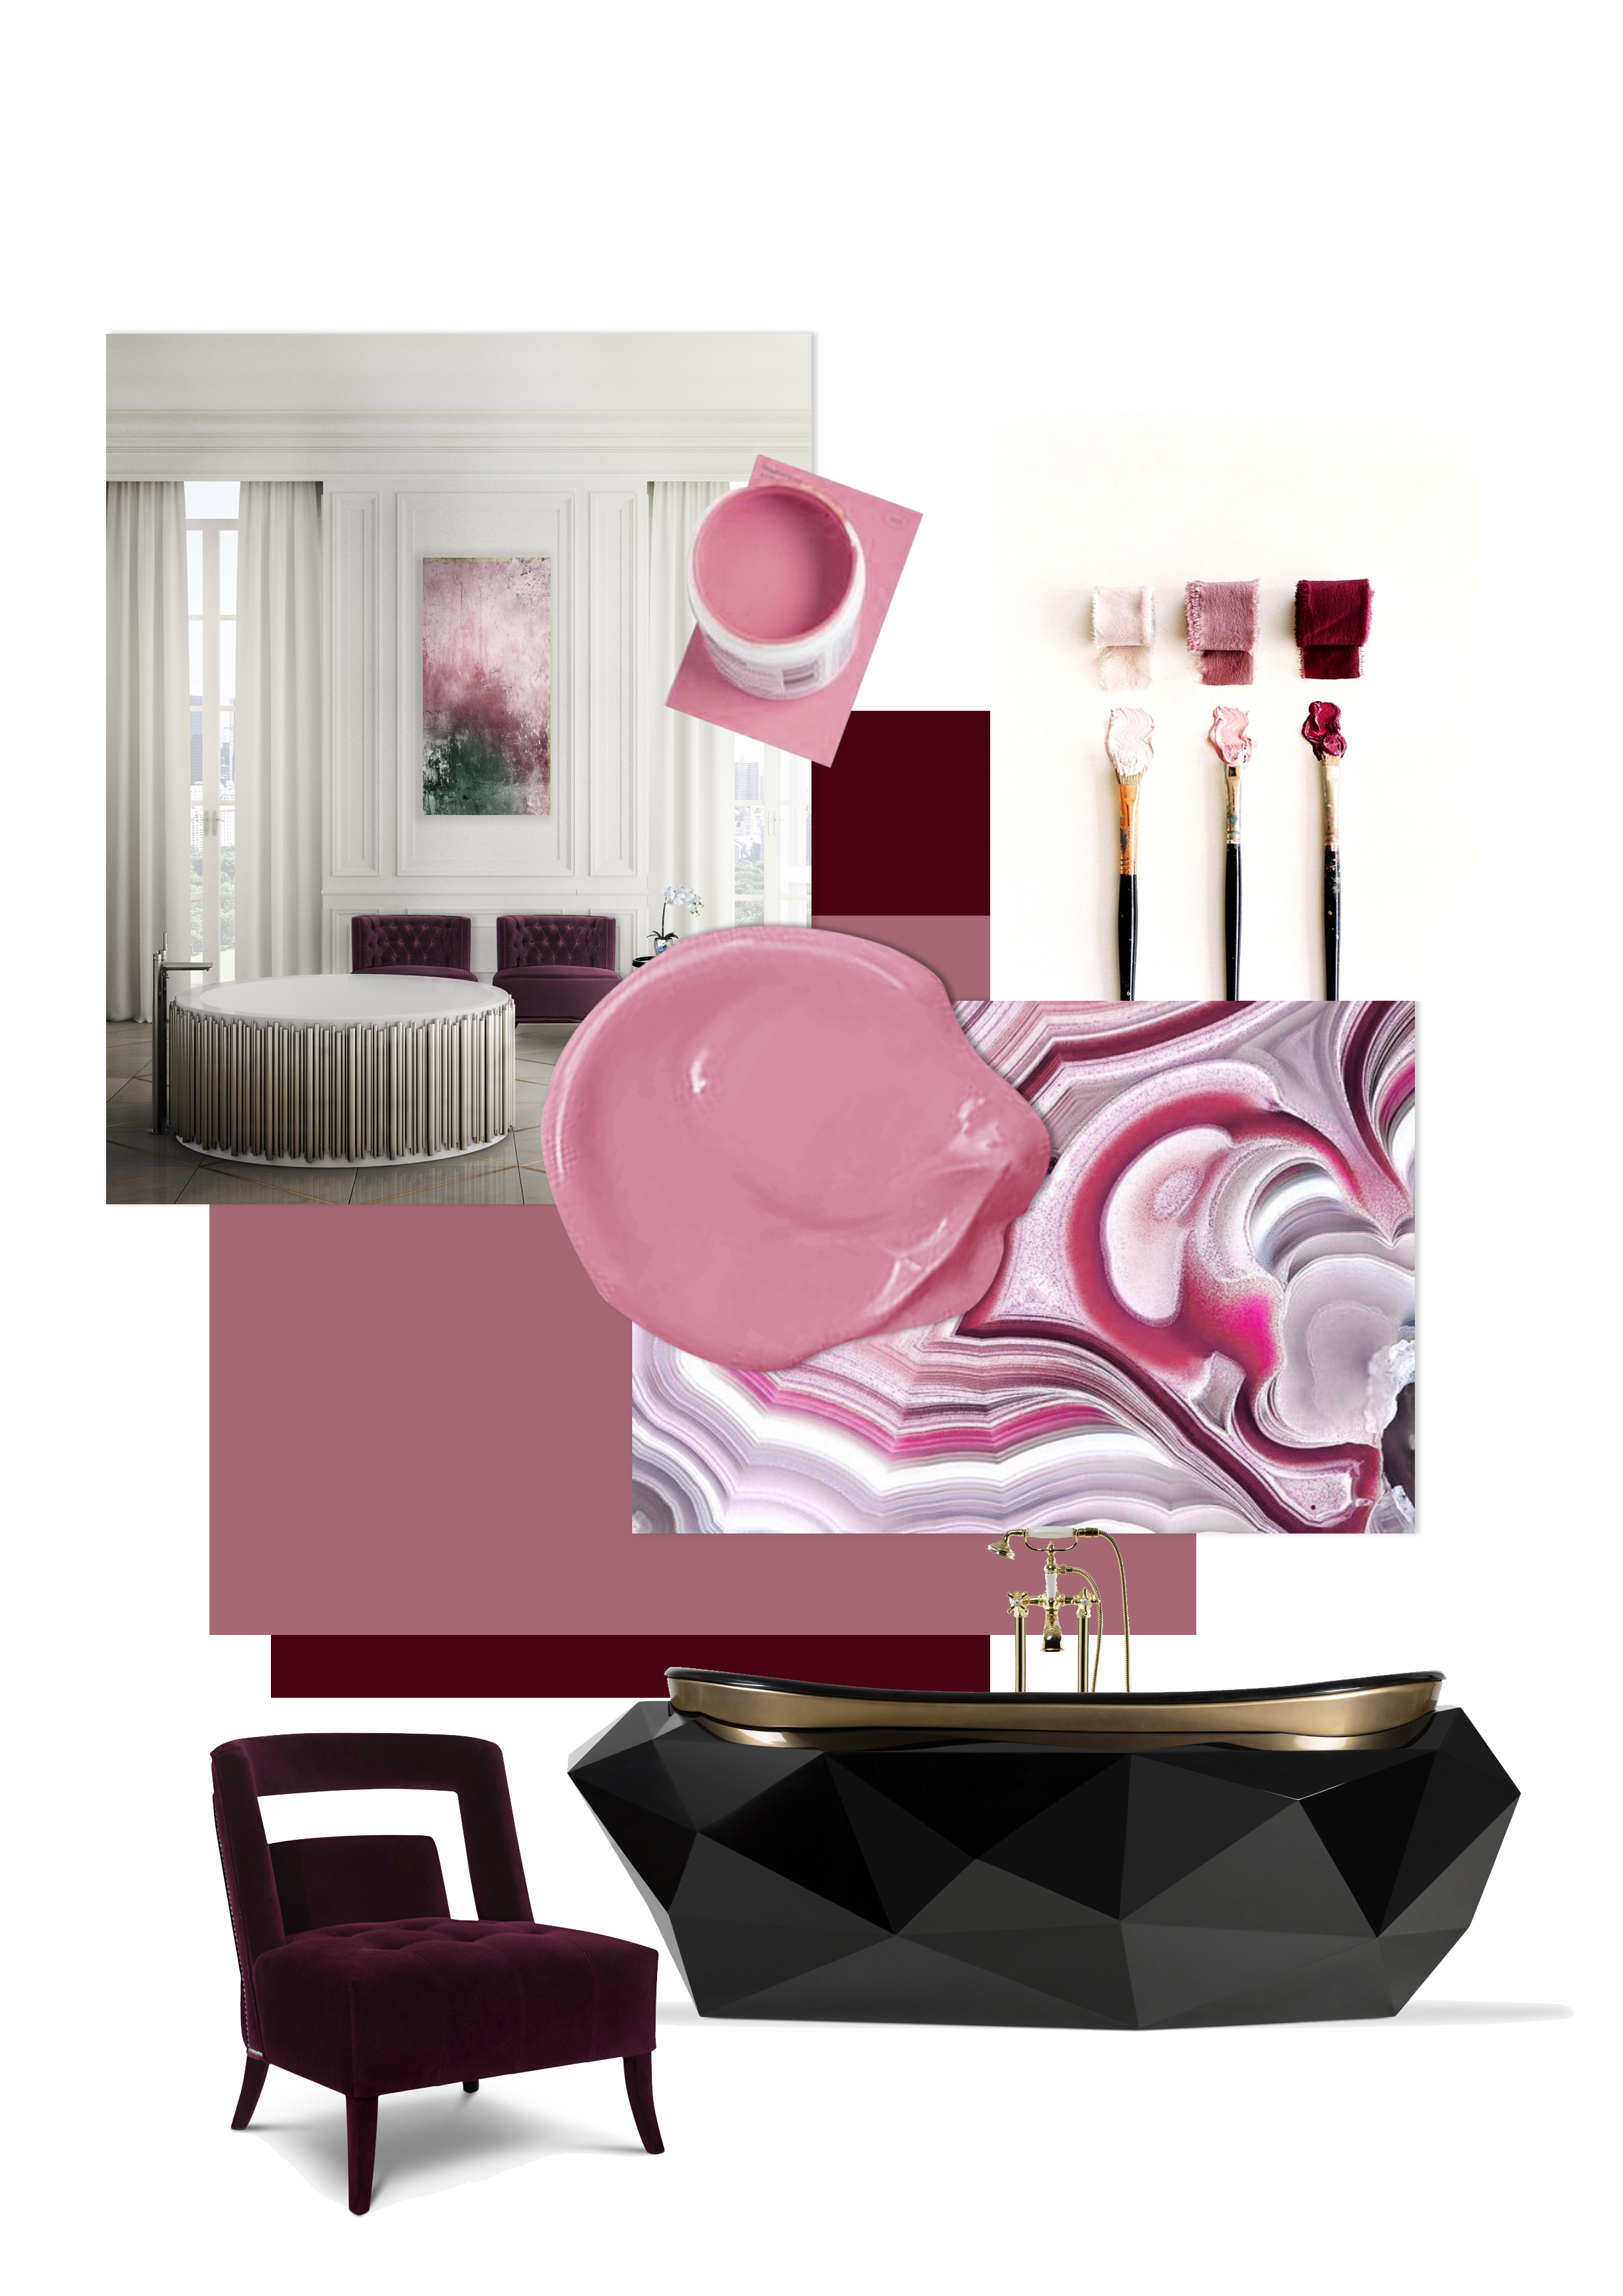 Inspirational and Colorful Moodboards for a Bathroom Makeover